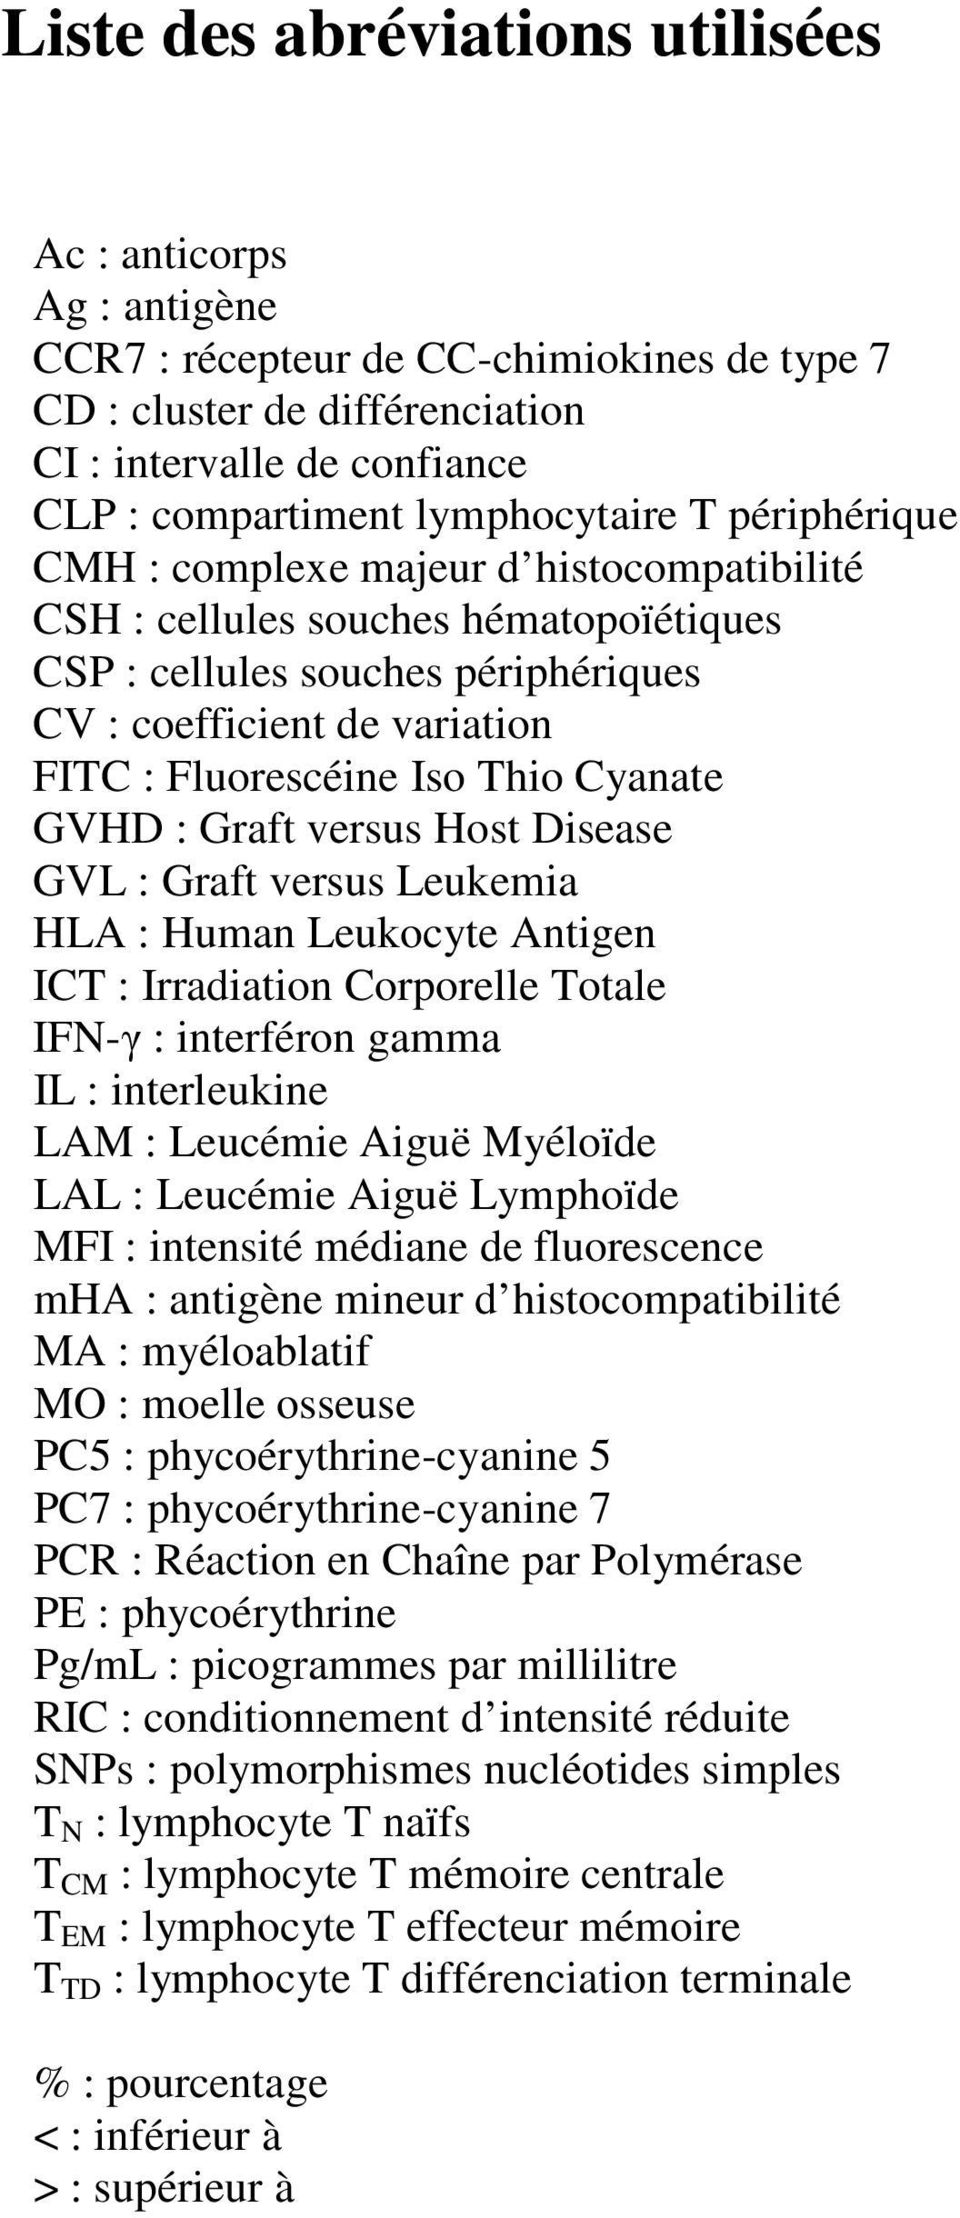 Iso Thio Cyanate GVHD : Graft versus Host Disease GVL : Graft versus Leukemia HLA : Human Leukocyte Antigen ICT : Irradiation Corporelle Totale IFN-γ : interféron gamma IL : interleukine LAM :